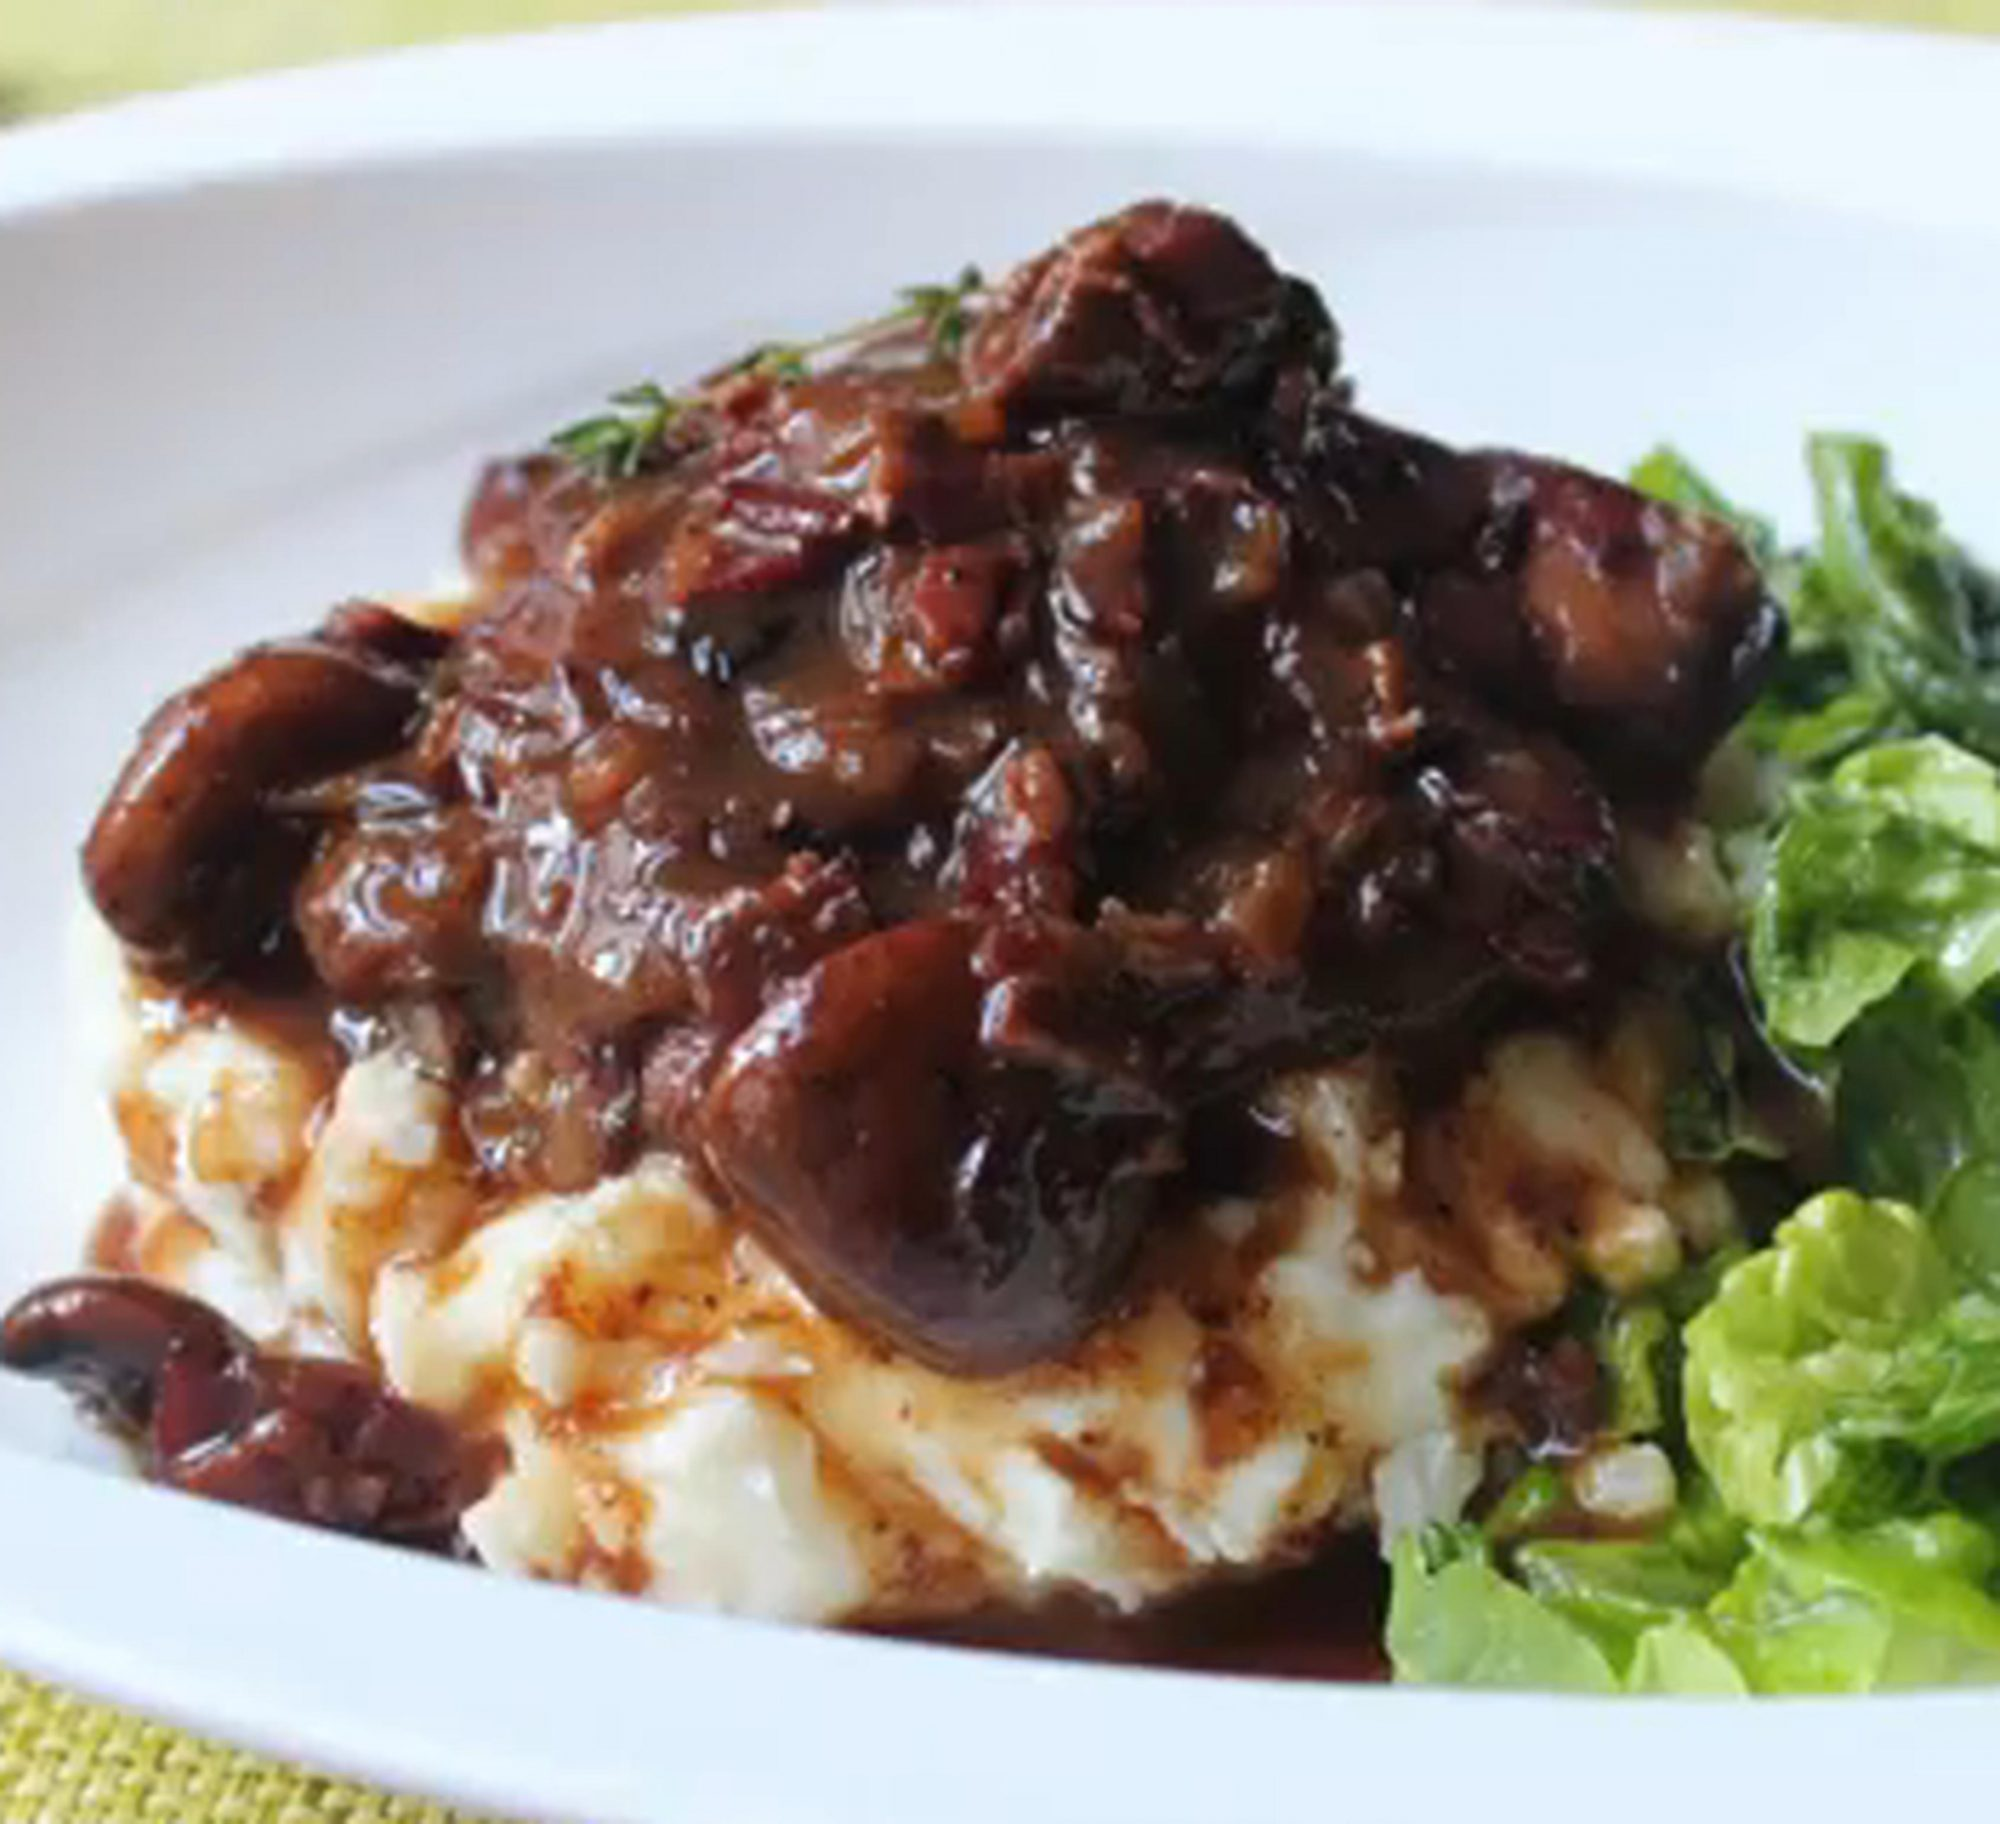 chicken and mushrooms on a bed of mashed potatoes